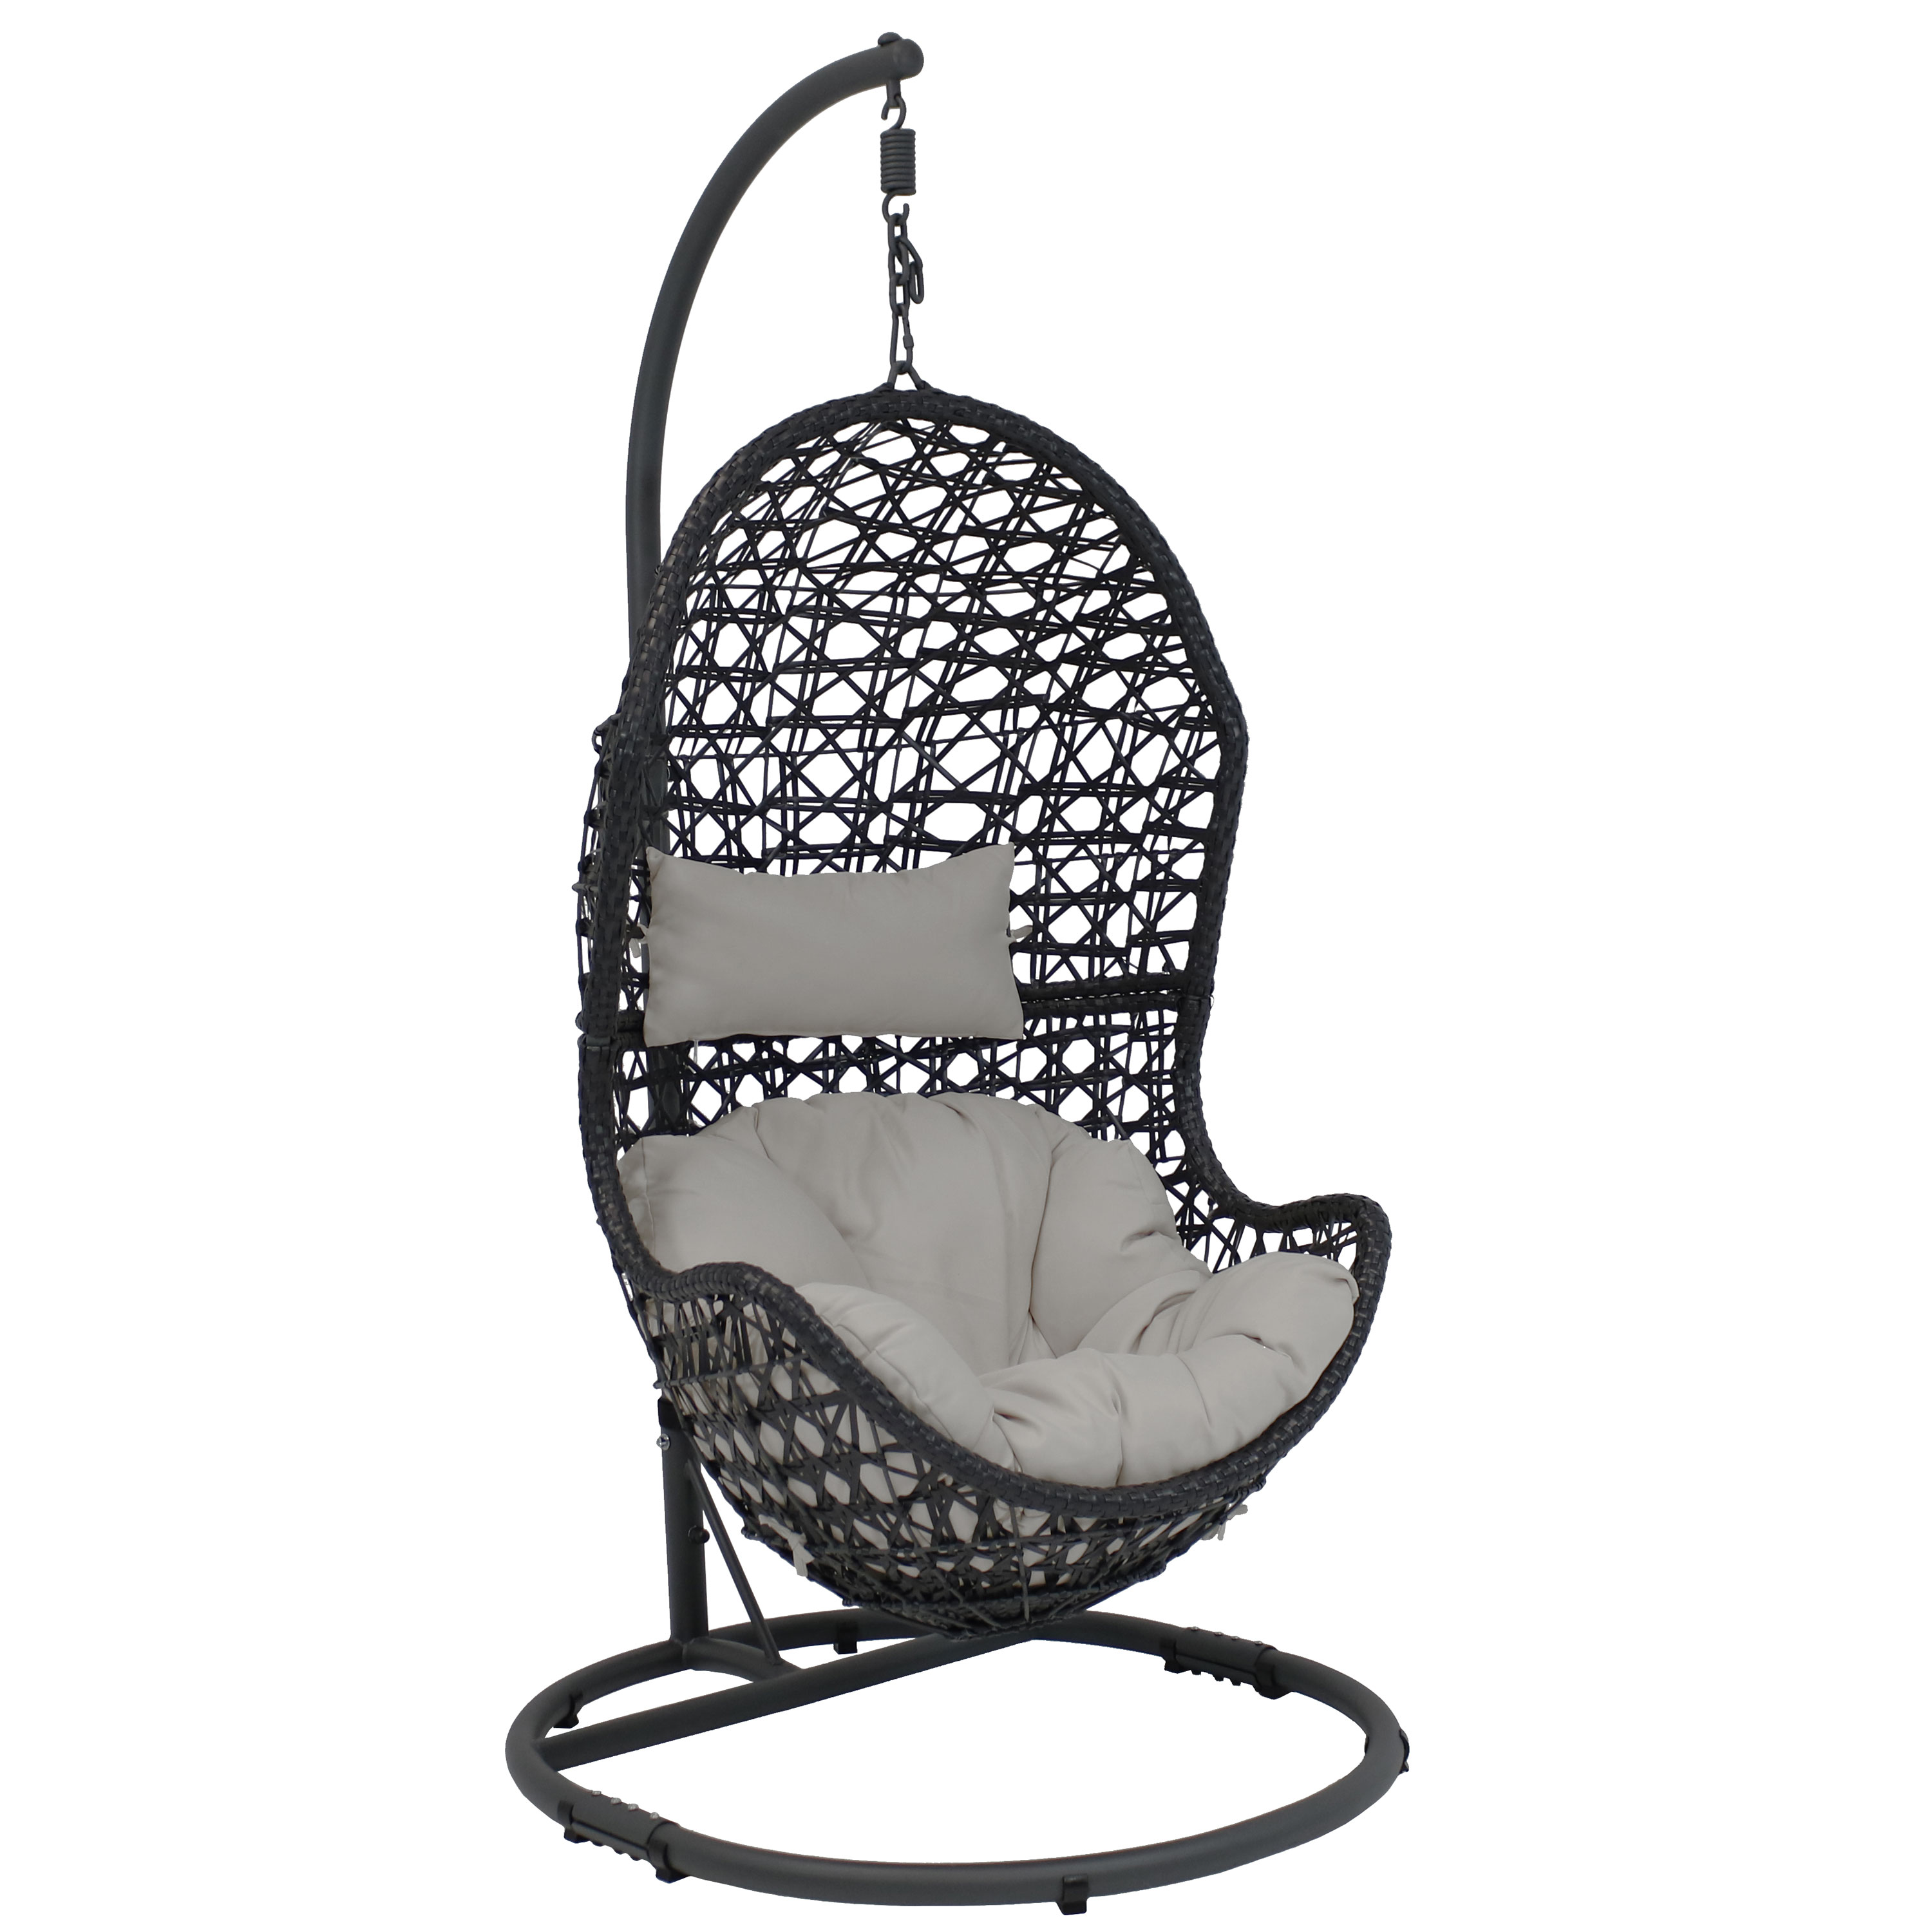 Hanging Egg Chair Swing Stand Set Wicker Basket Use Gray Cushion Headrest Photo